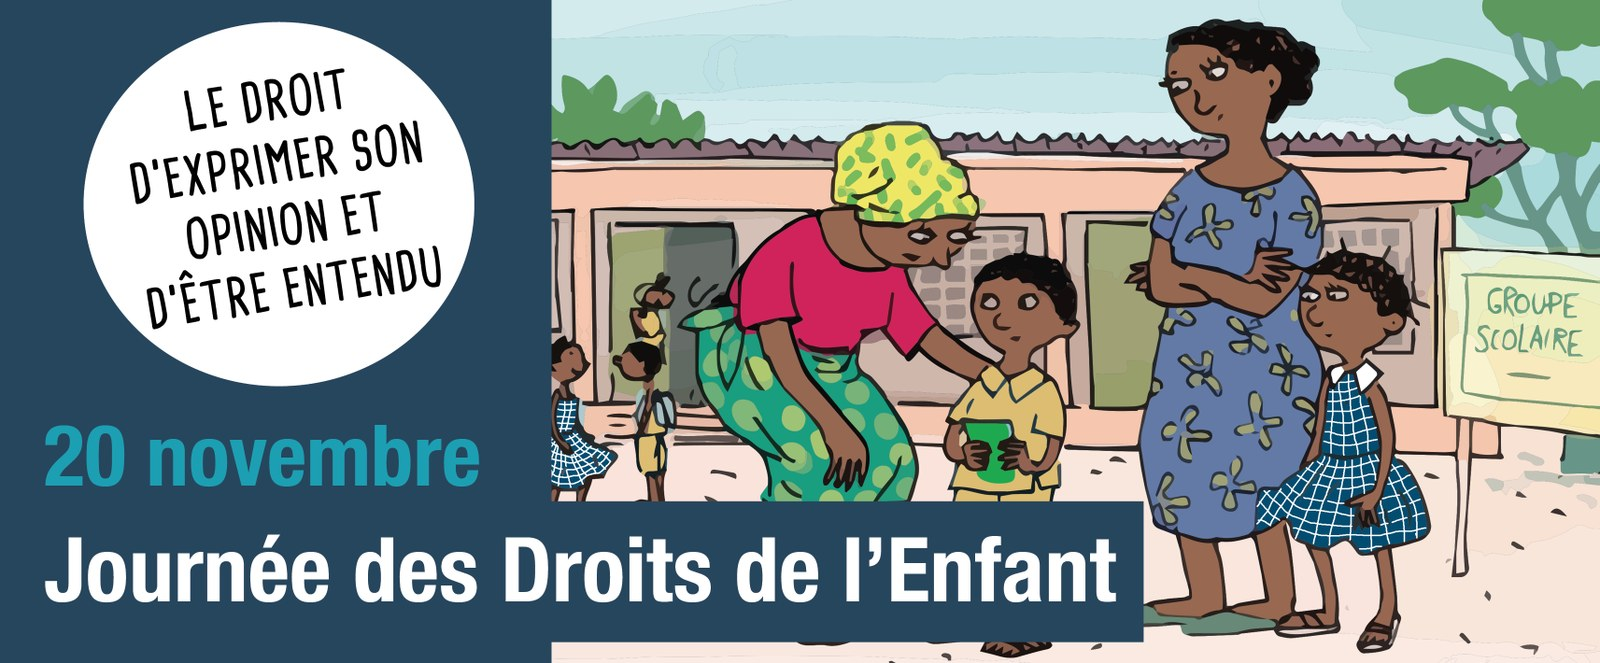 journee-internationale-des-droits-de-lenfant